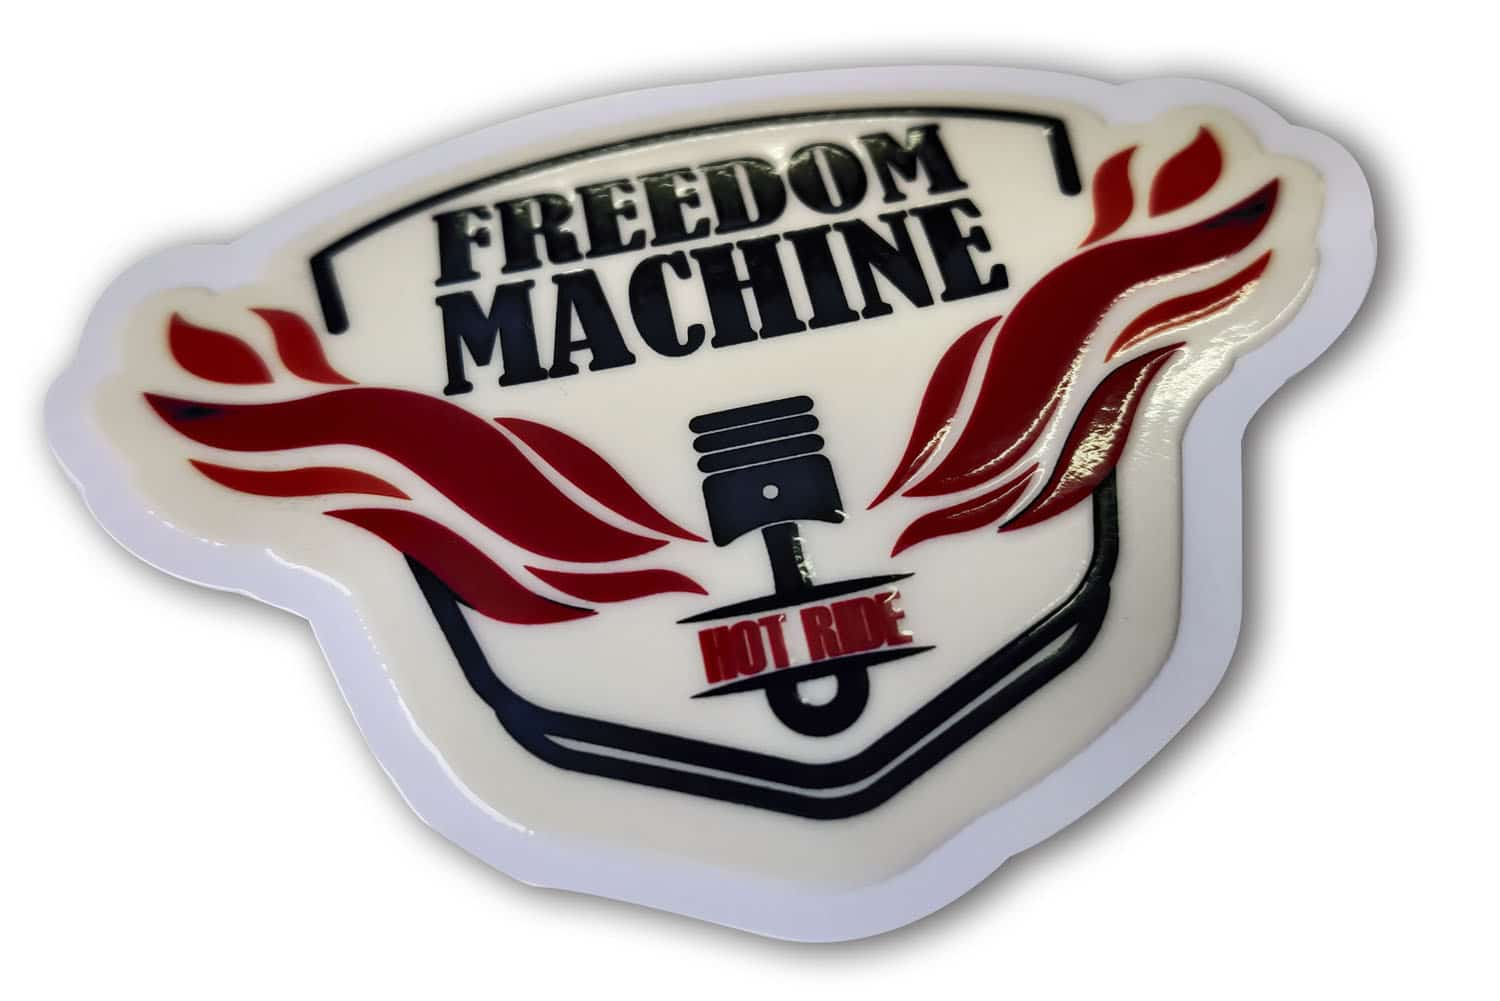 Shape cut sticker of the 'Freedom' brand logo given a raised, embossed effect using a UV ink coat